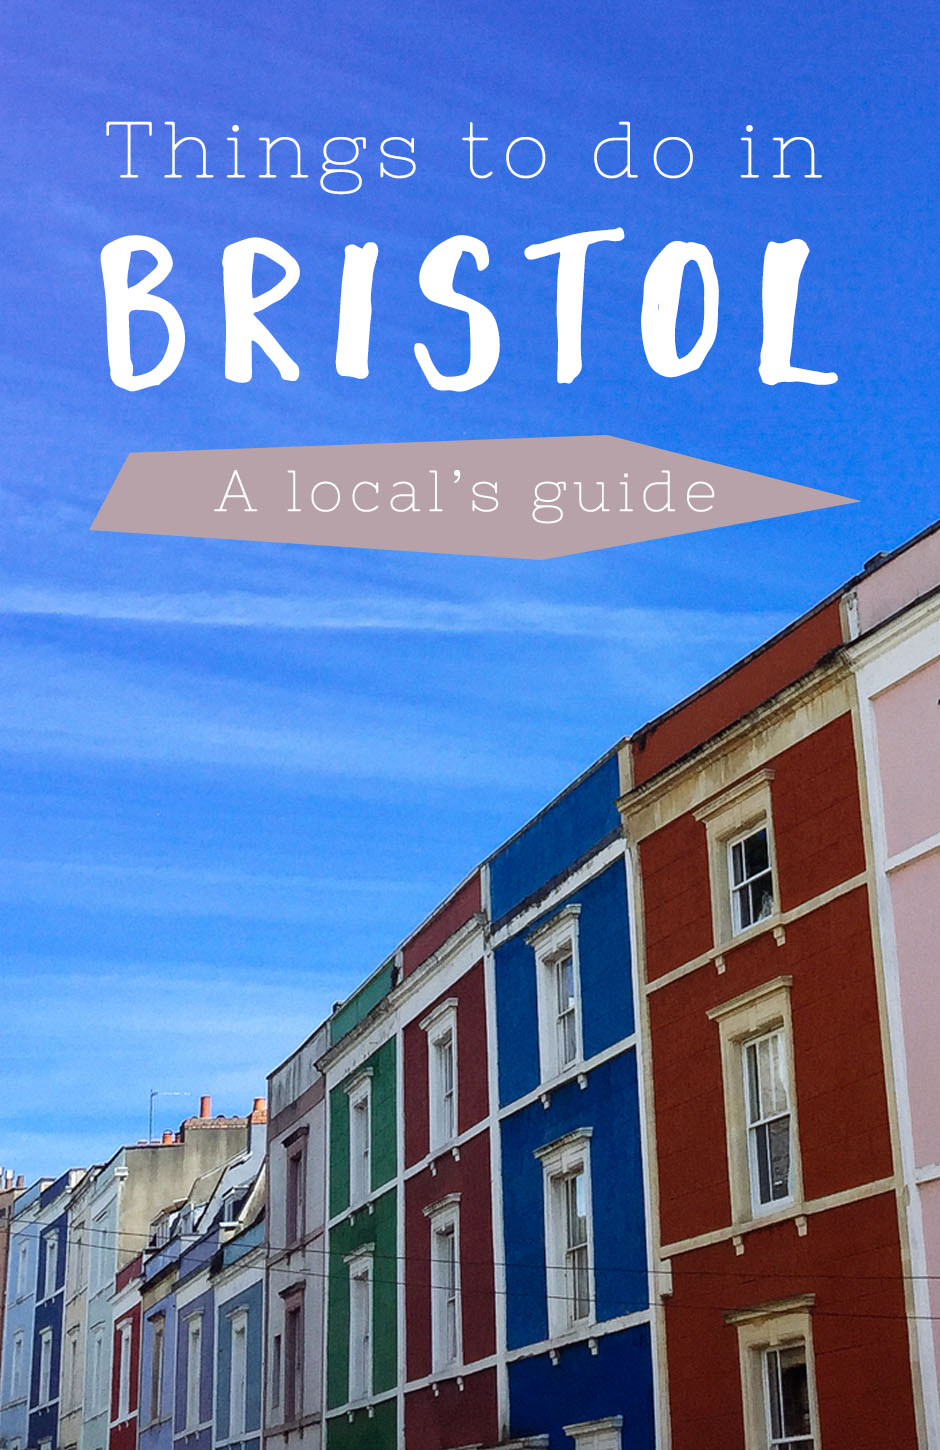 Things to do in Bristol: A local's guide, featuring restaurants, street art, cafes, museums and all the best things in Bristol.